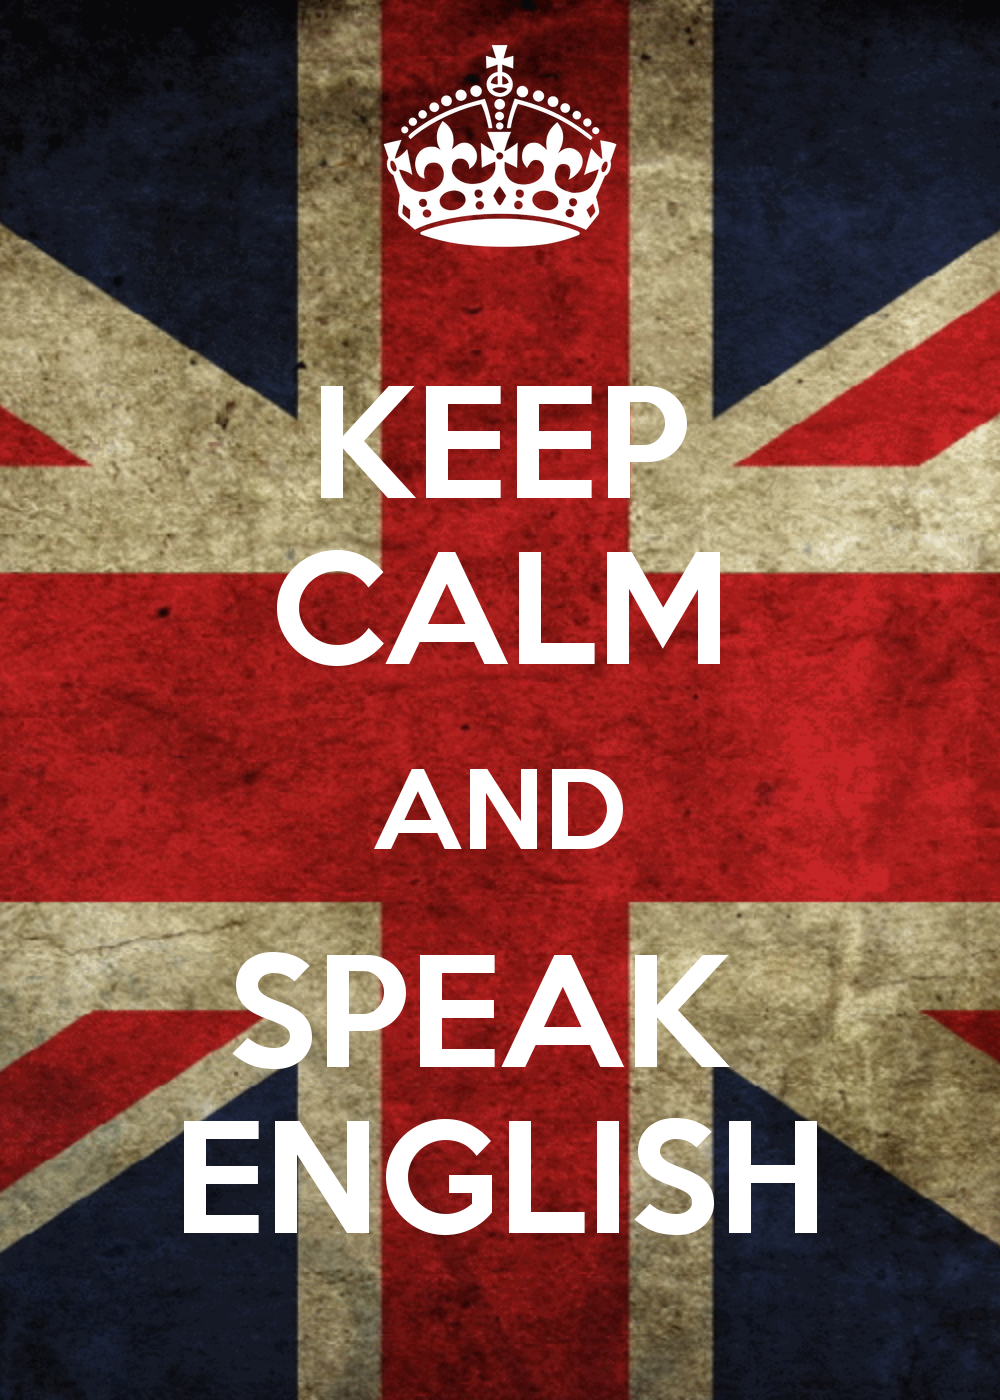 keep-calm-and-speak-english-186.png